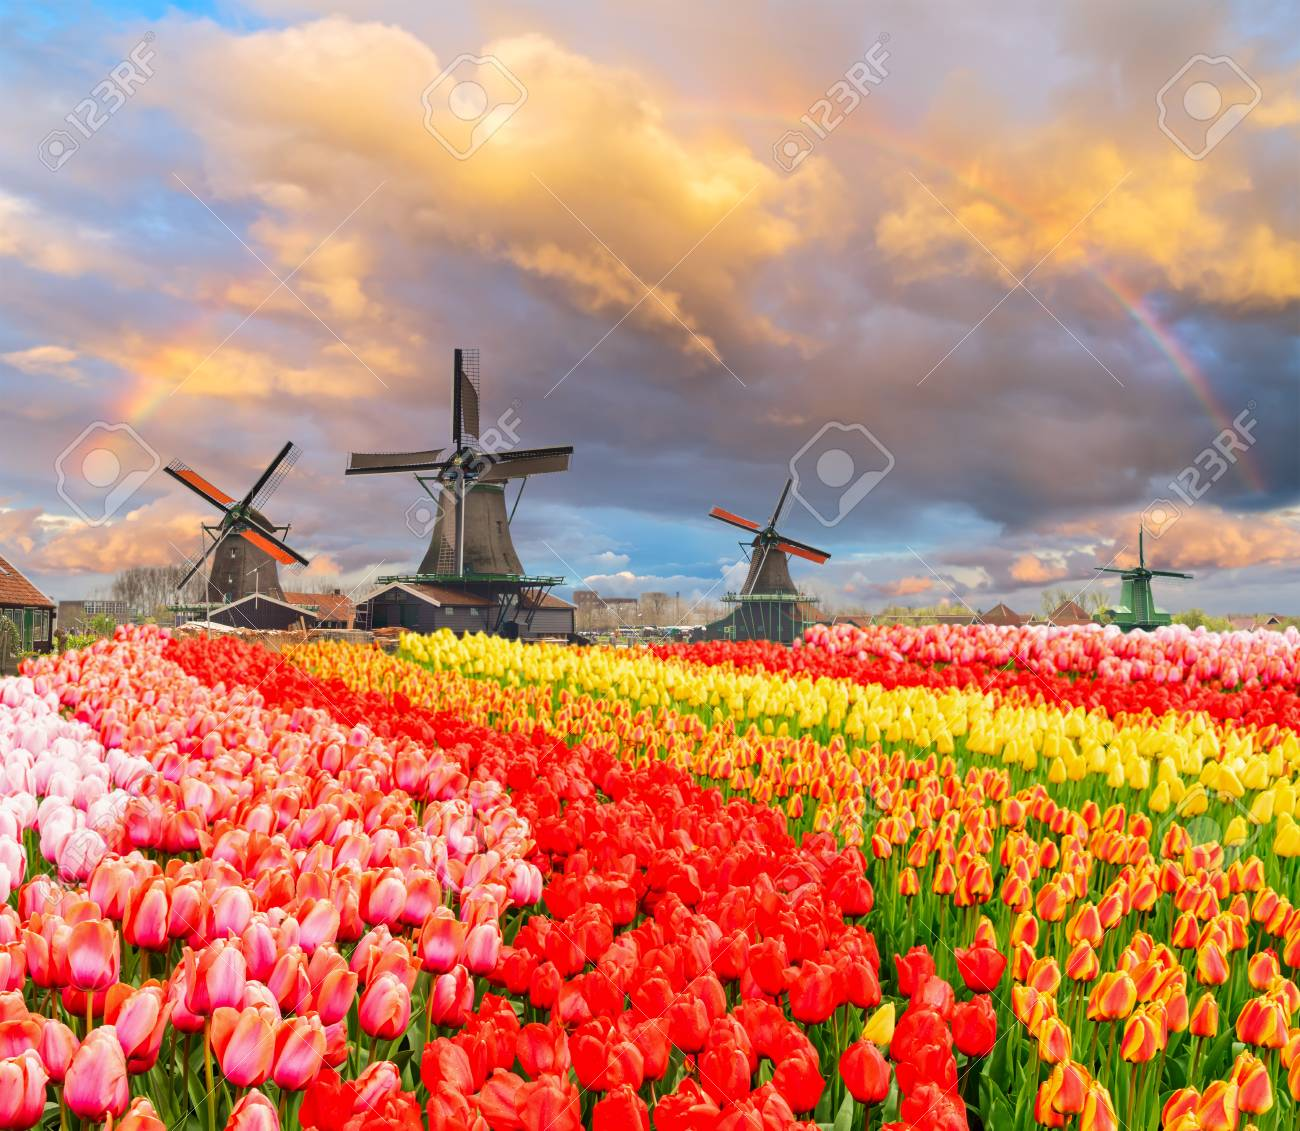 traditional Dutch windmills of Zaanse Schans and rows of tulips under sunset sky with rainbow, Netherlands - 96110889